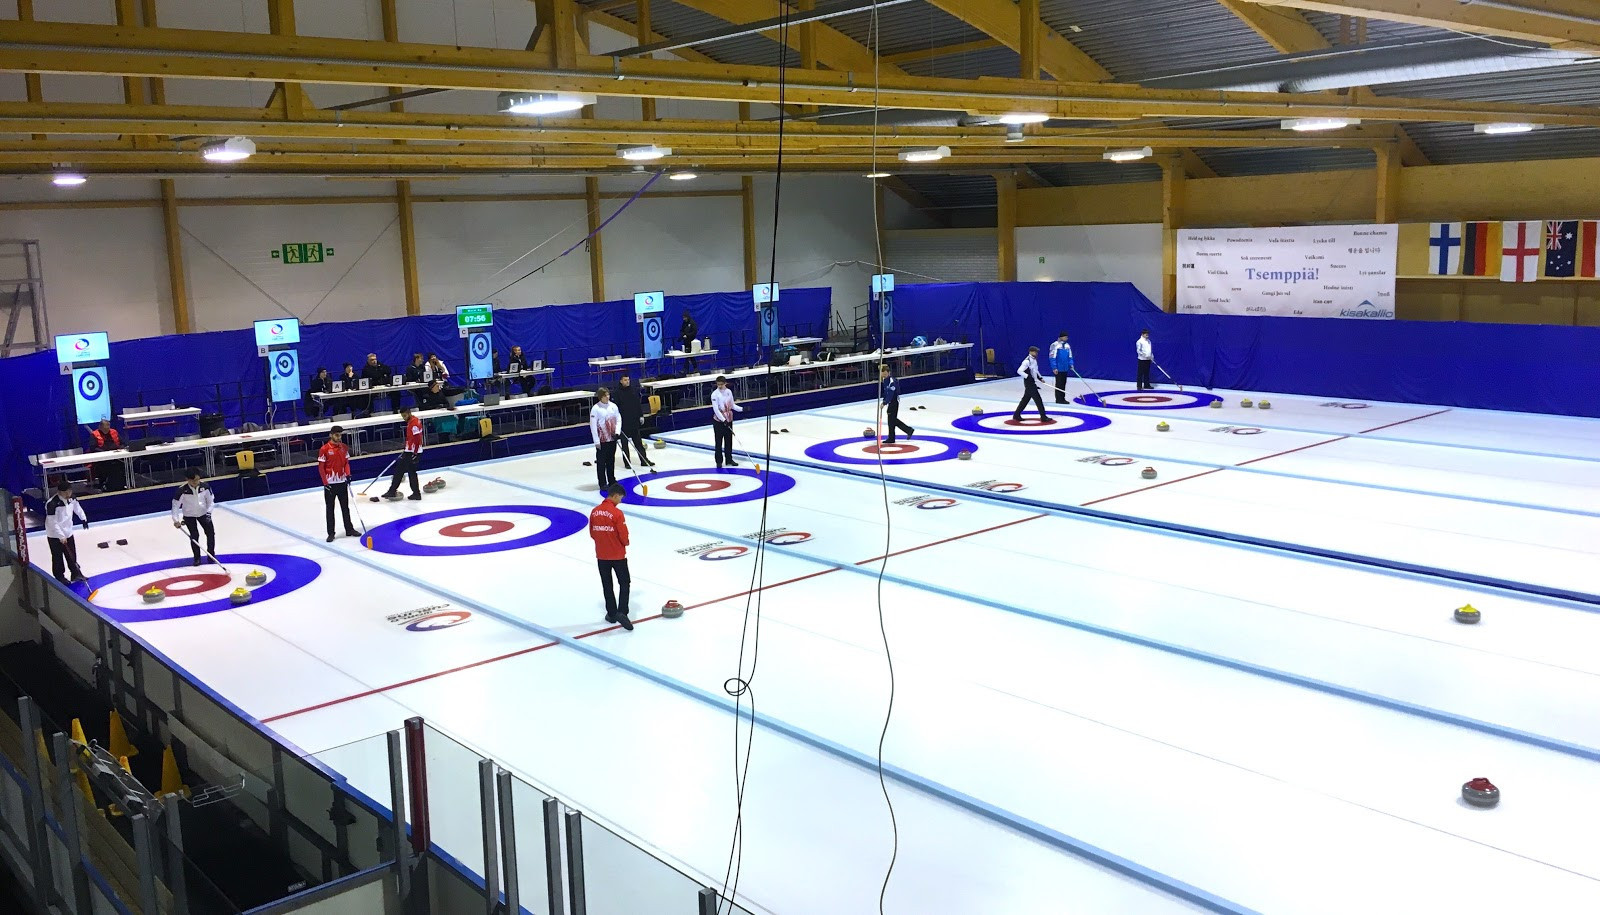 Sixteen teams will compete at the World Curling Federation qualification event in Finland ©Kisakallio Sports Institute